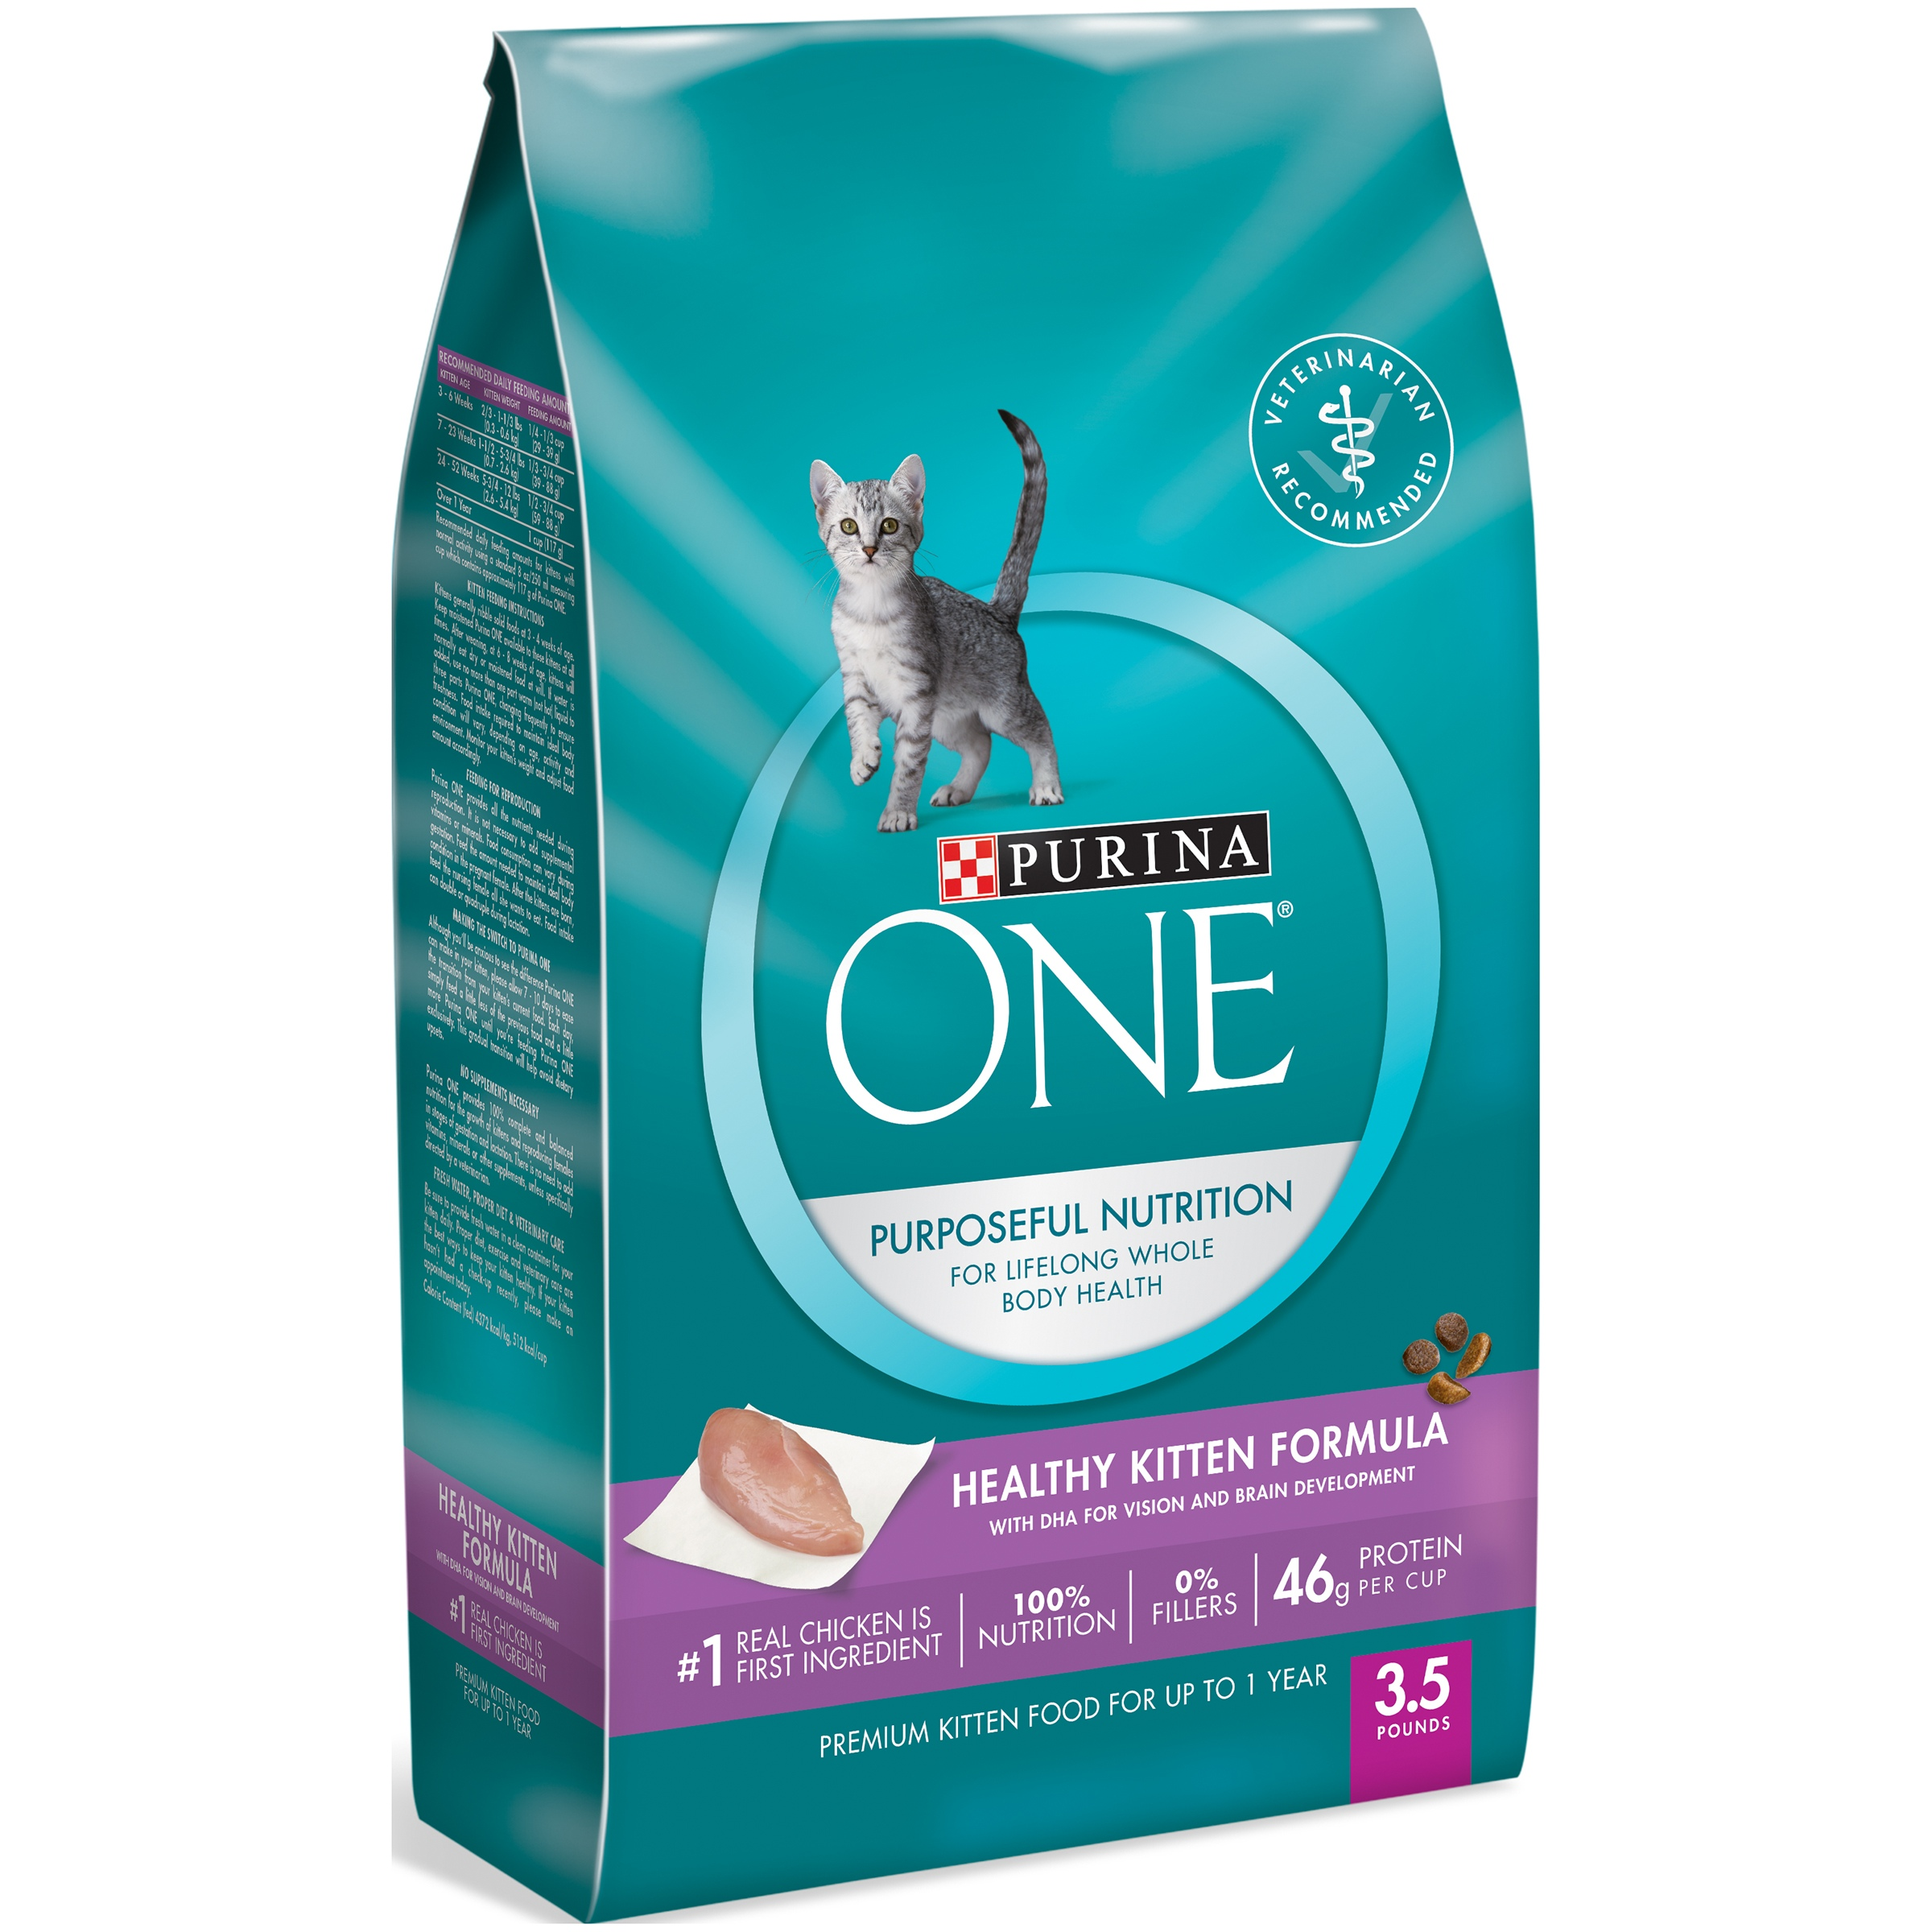 Purina ONE Healthy Kitten Formula Dry Kitten Food, 3.5 Lb